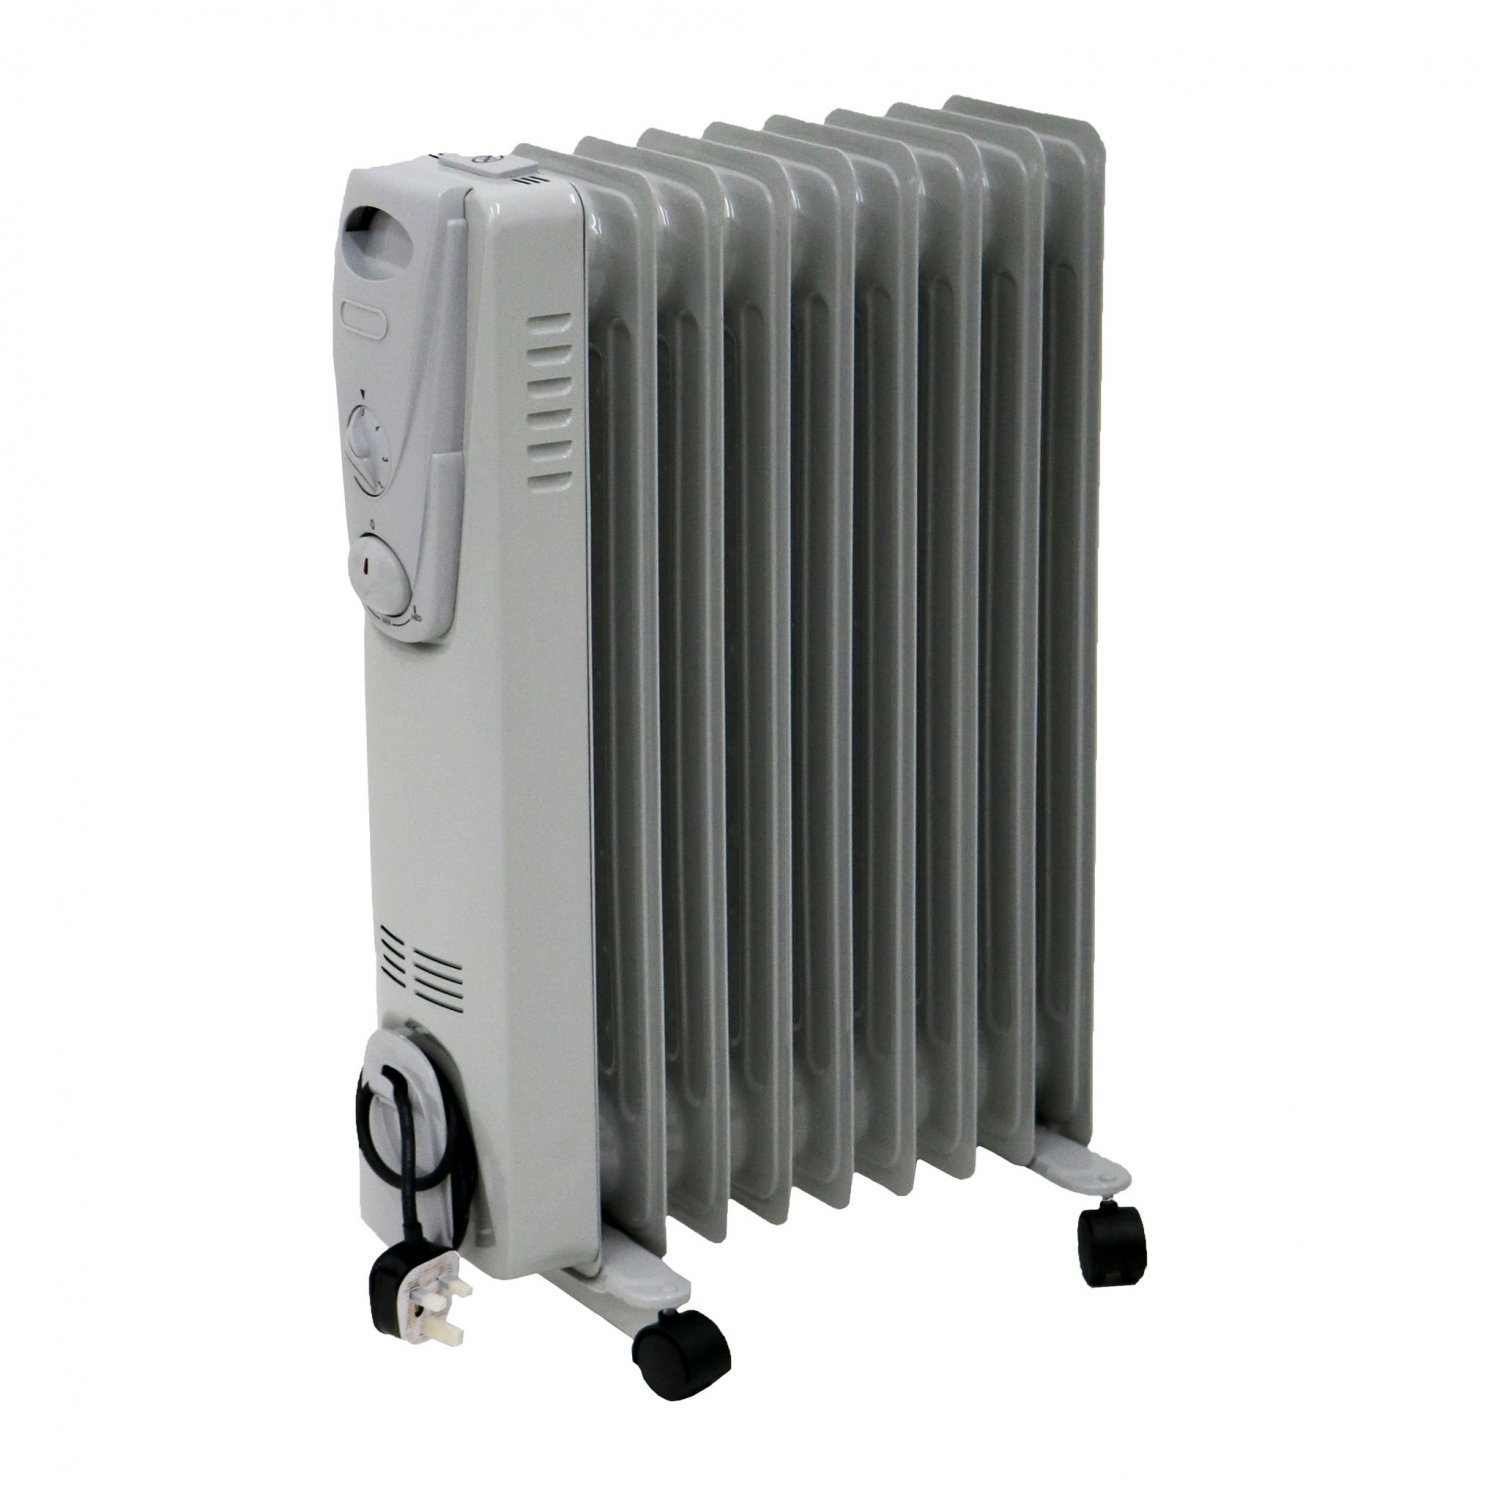 24e8264fa8c Oypla Electrical 2000W 9 Fin Portable Oil Filled  Amazon.co.uk  Electronics